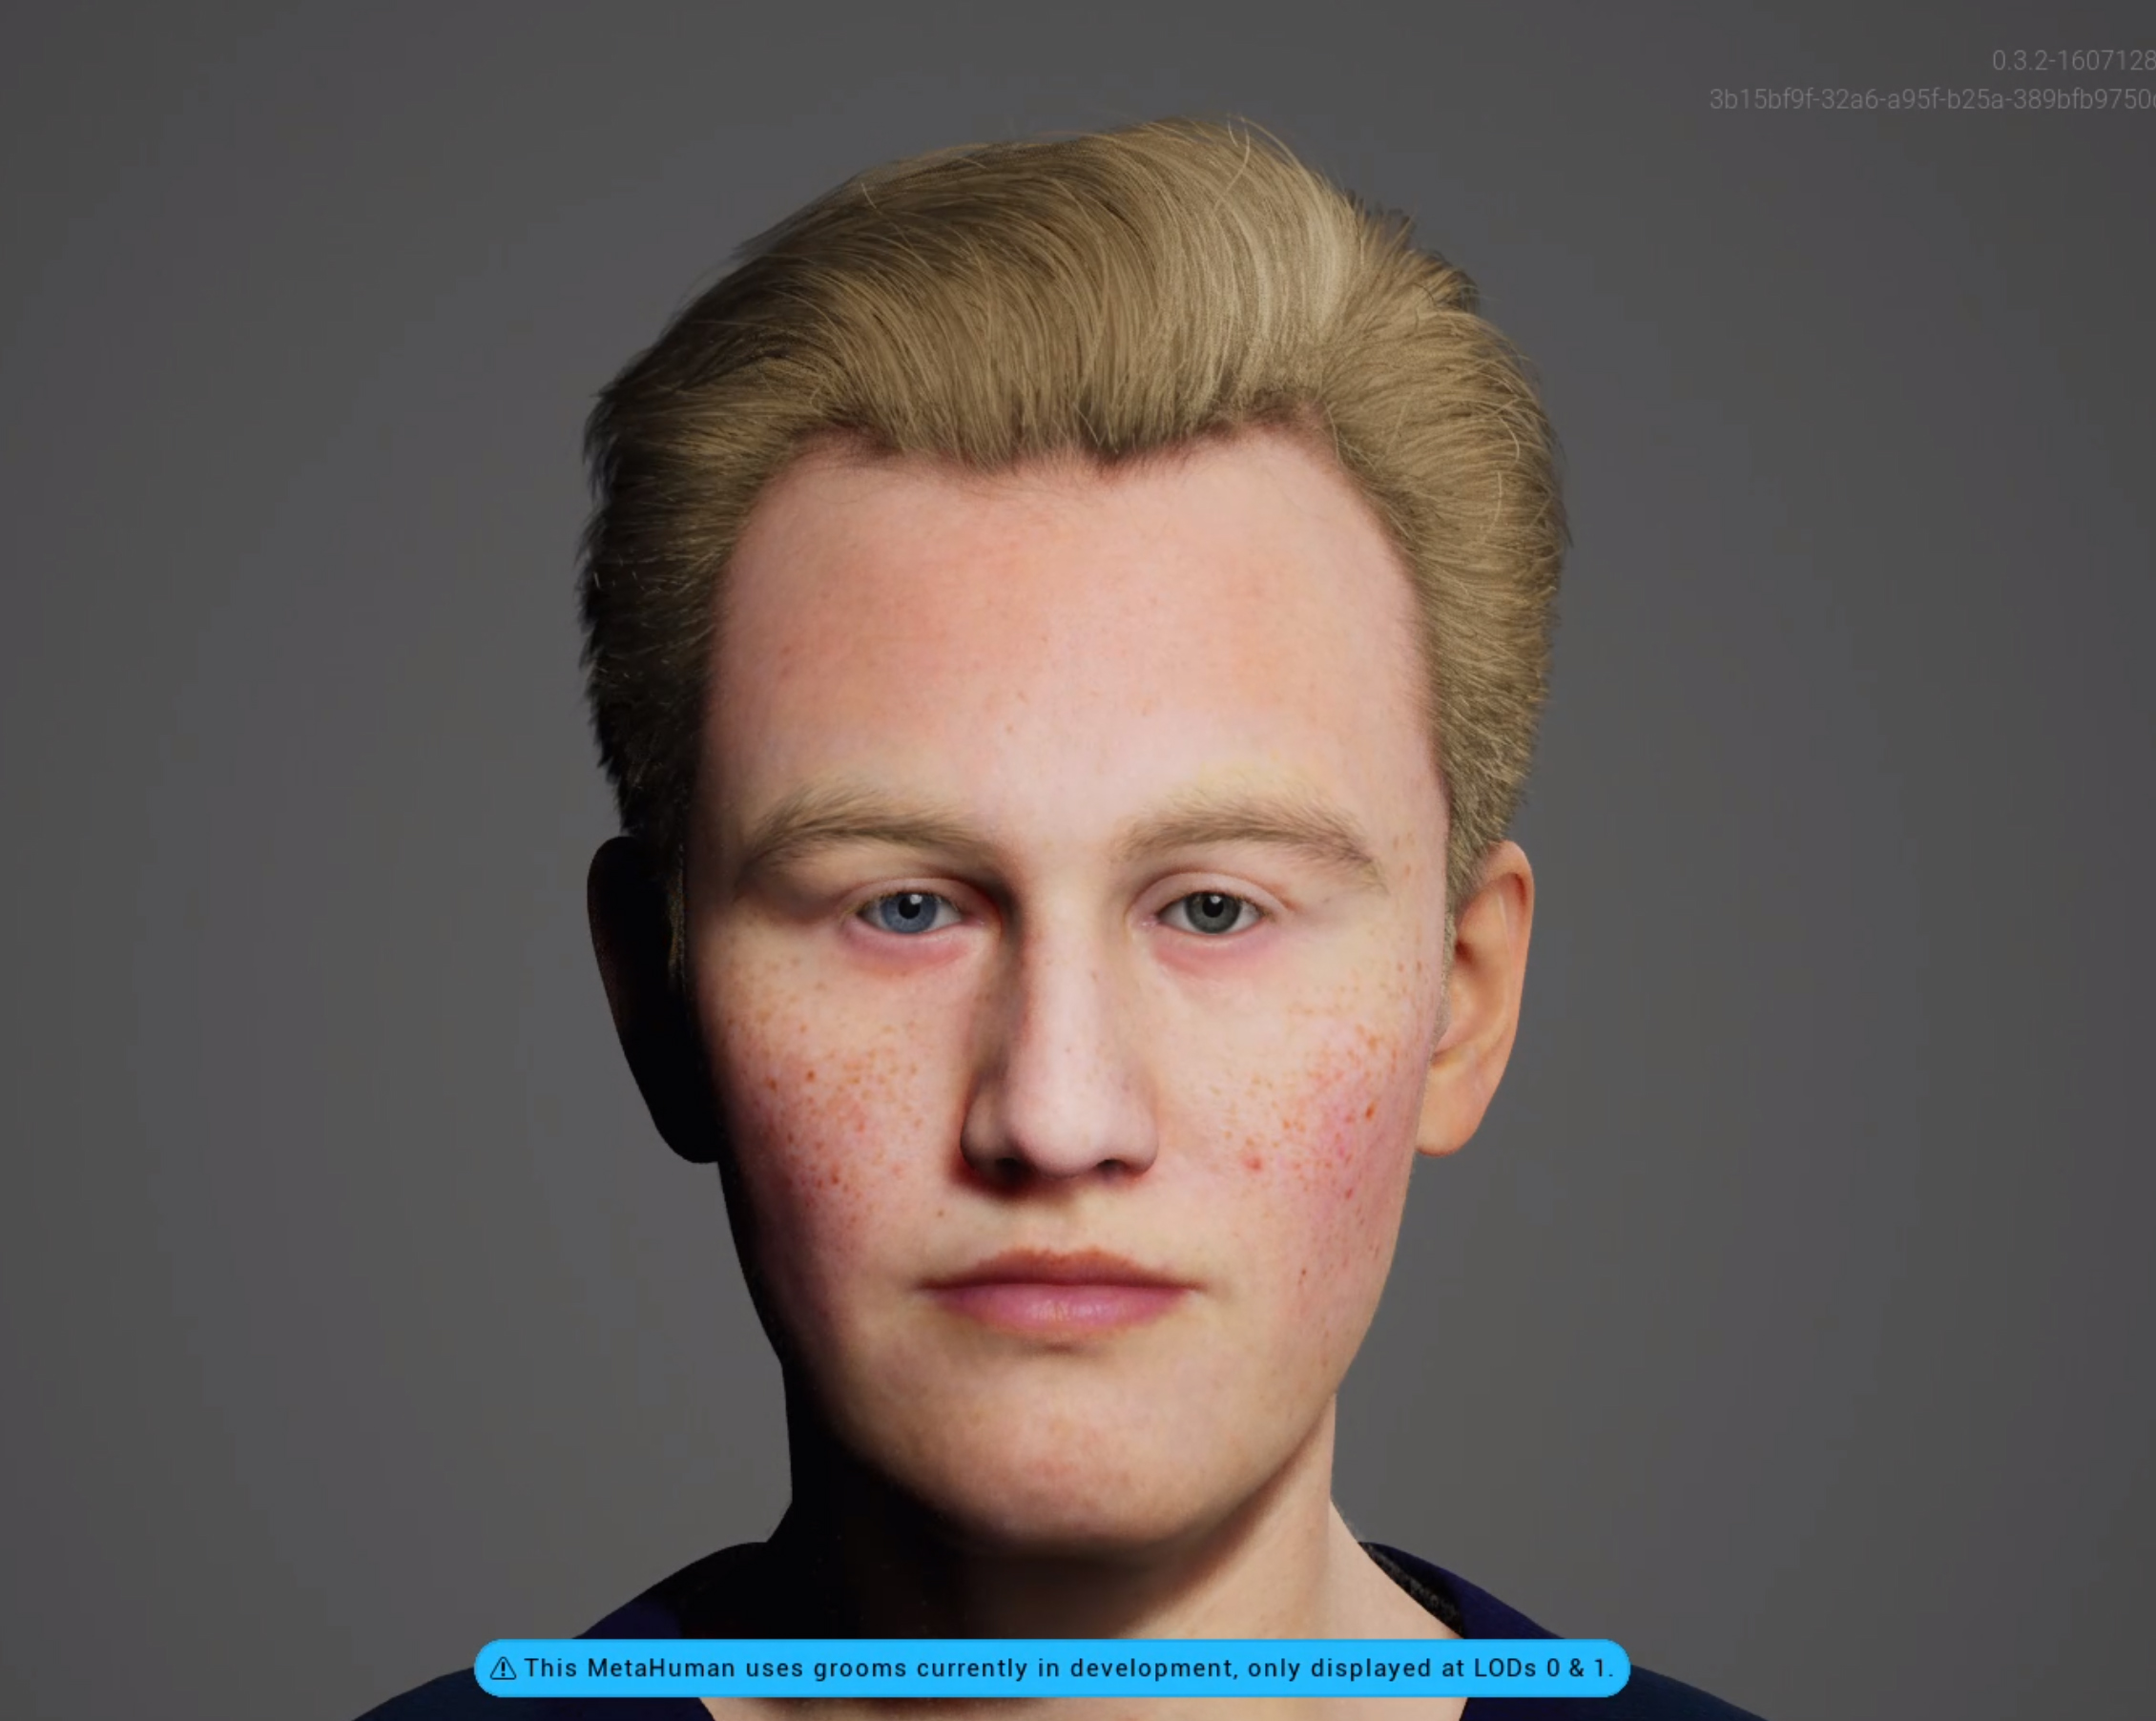 This is Roger a MetaHuman created with the Unreal Engine Metahuman Creator